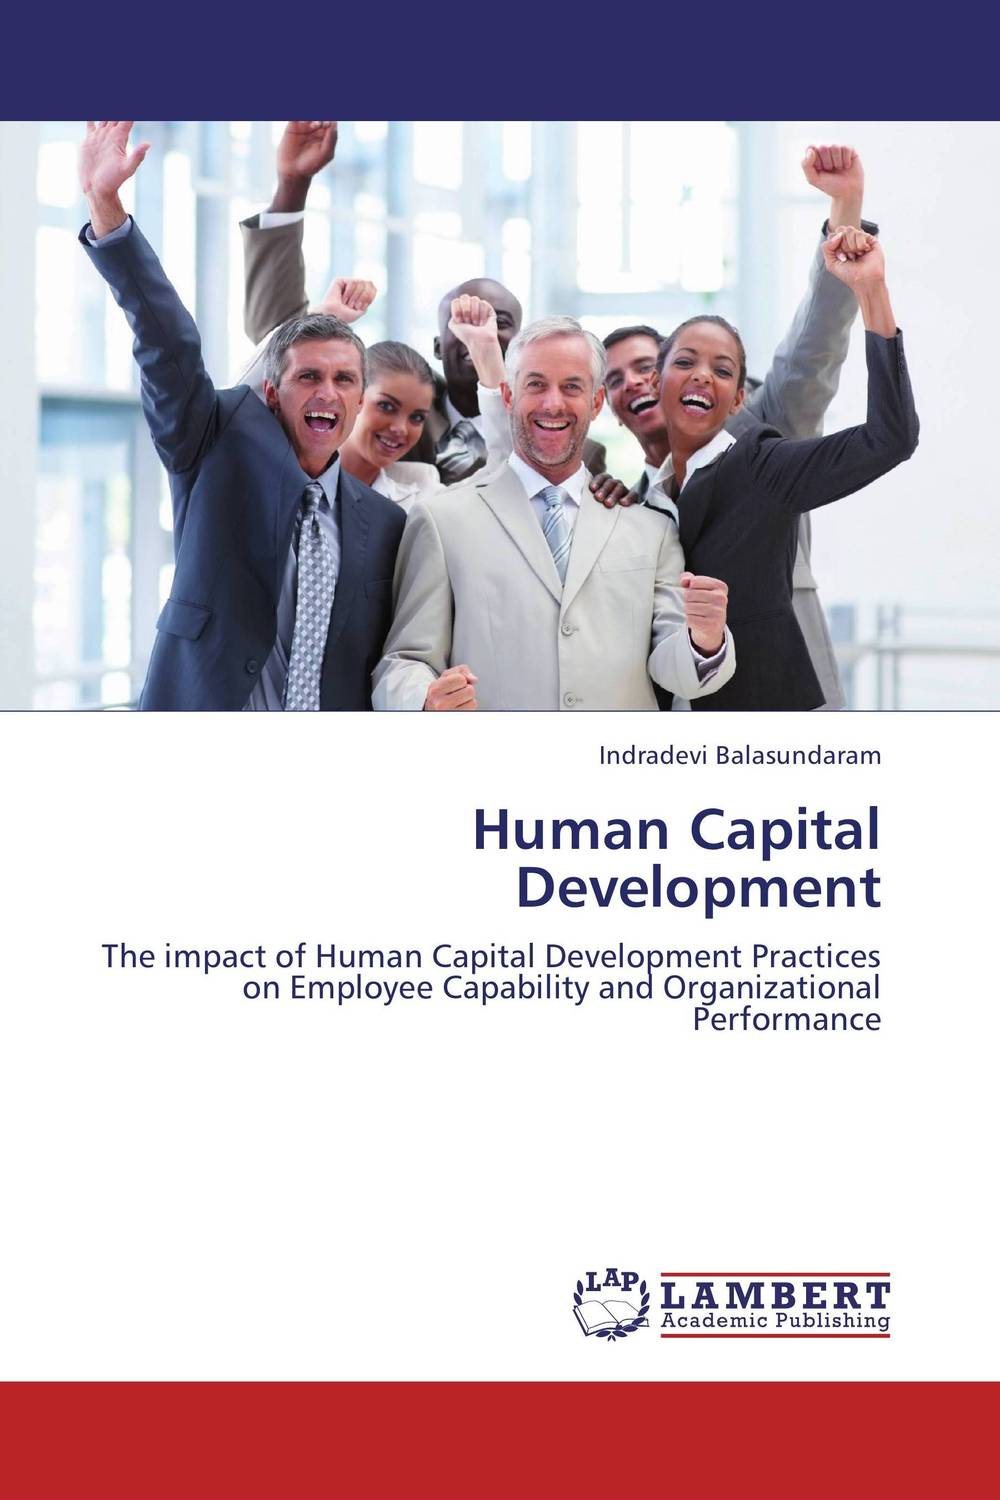 Human Capital Development technology based employee training and organizational performance